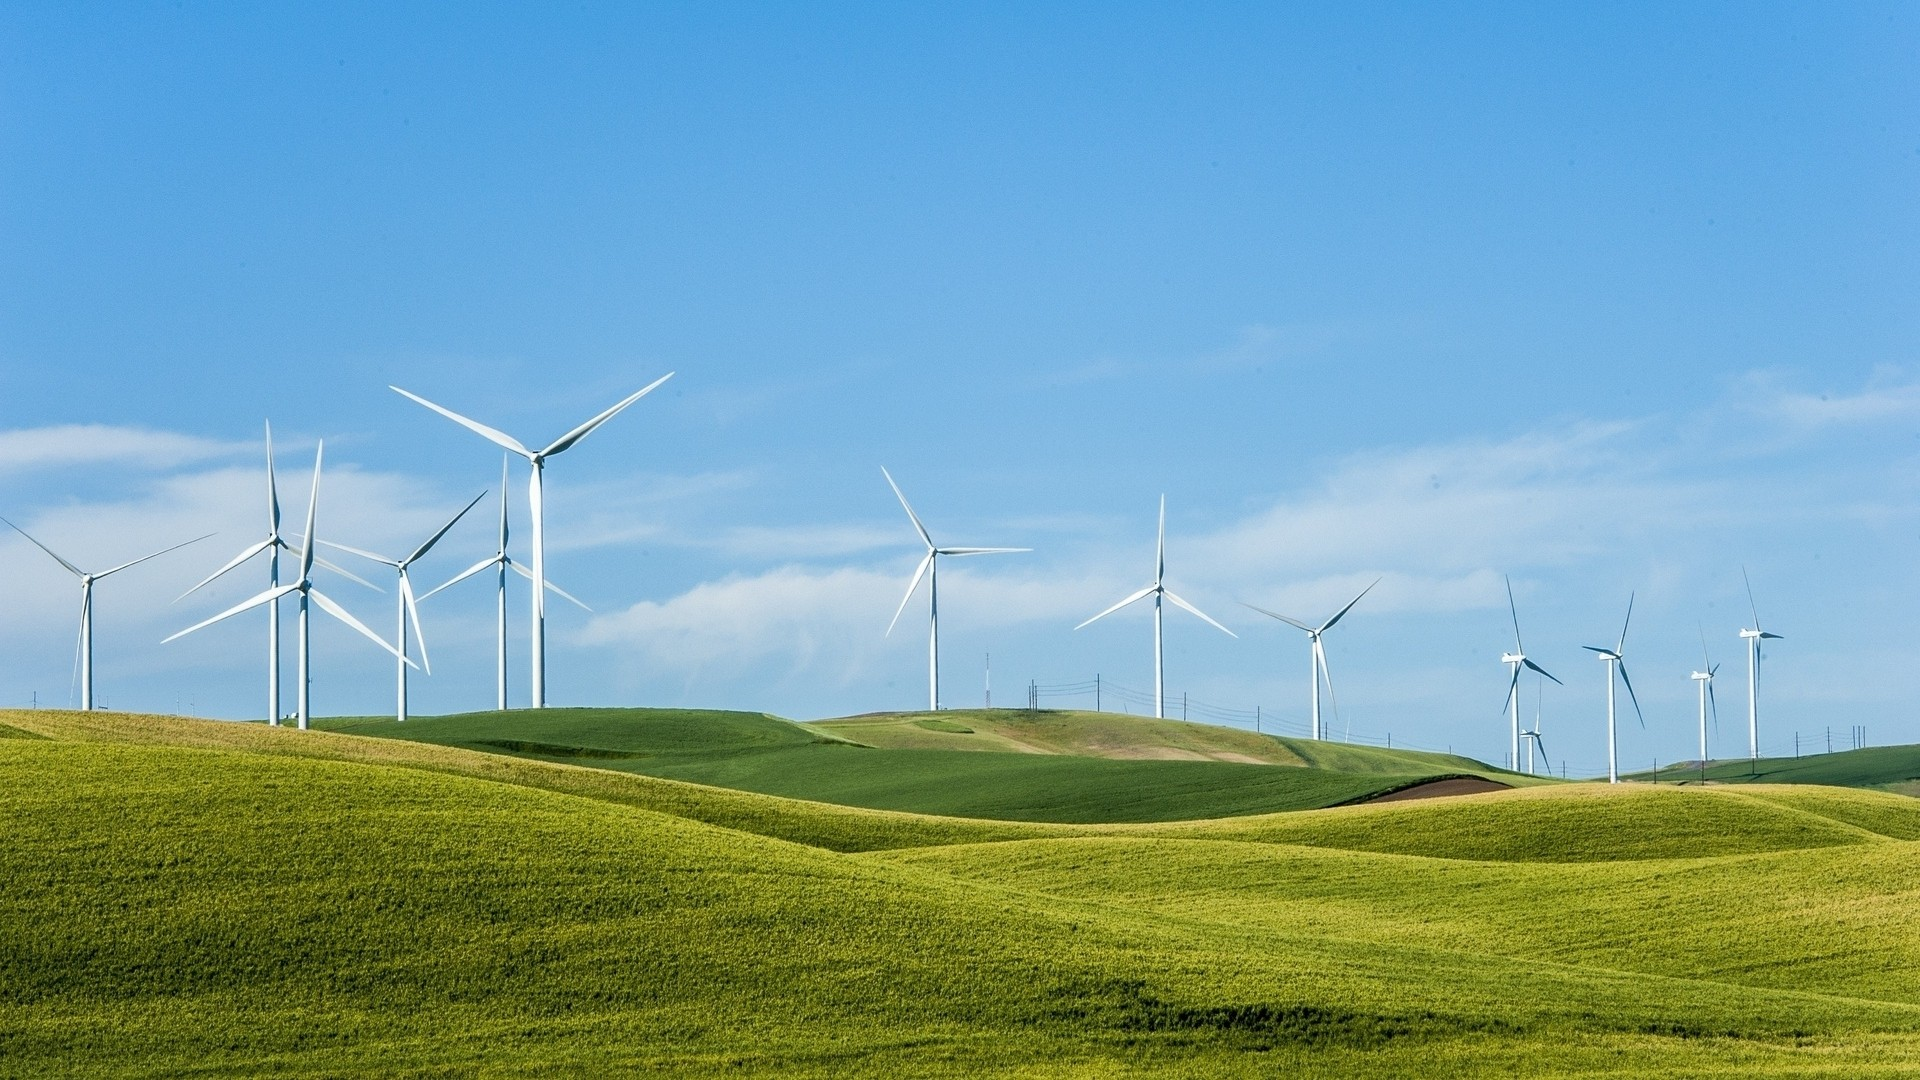 wind-turbine-design-wallpaper-4